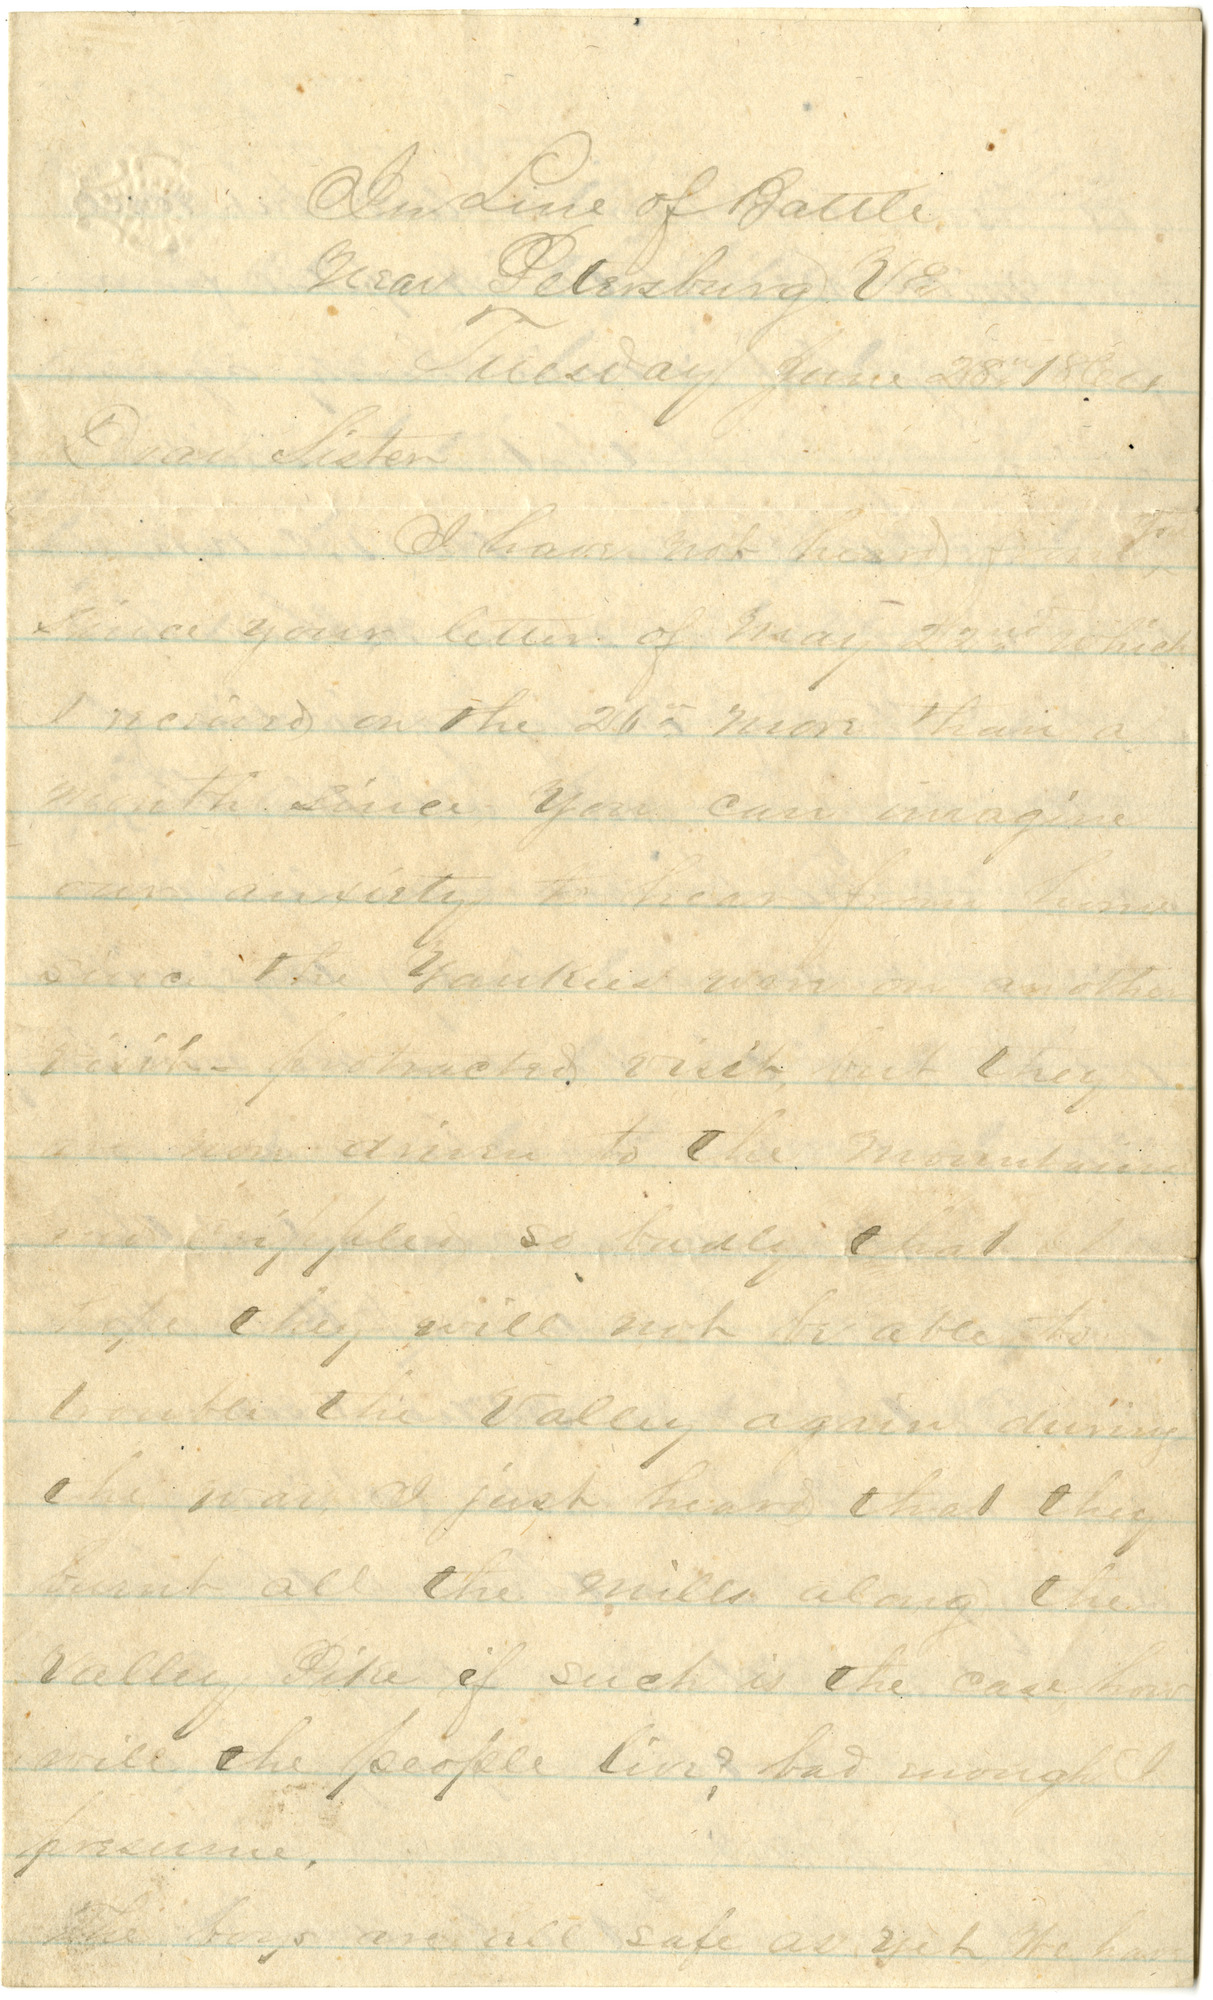 http://spec.lib.vt.edu/pickup/Omeka_upload/Ms1984-172_KoontzFamily_F1_Letter_1864_0628a.jpg